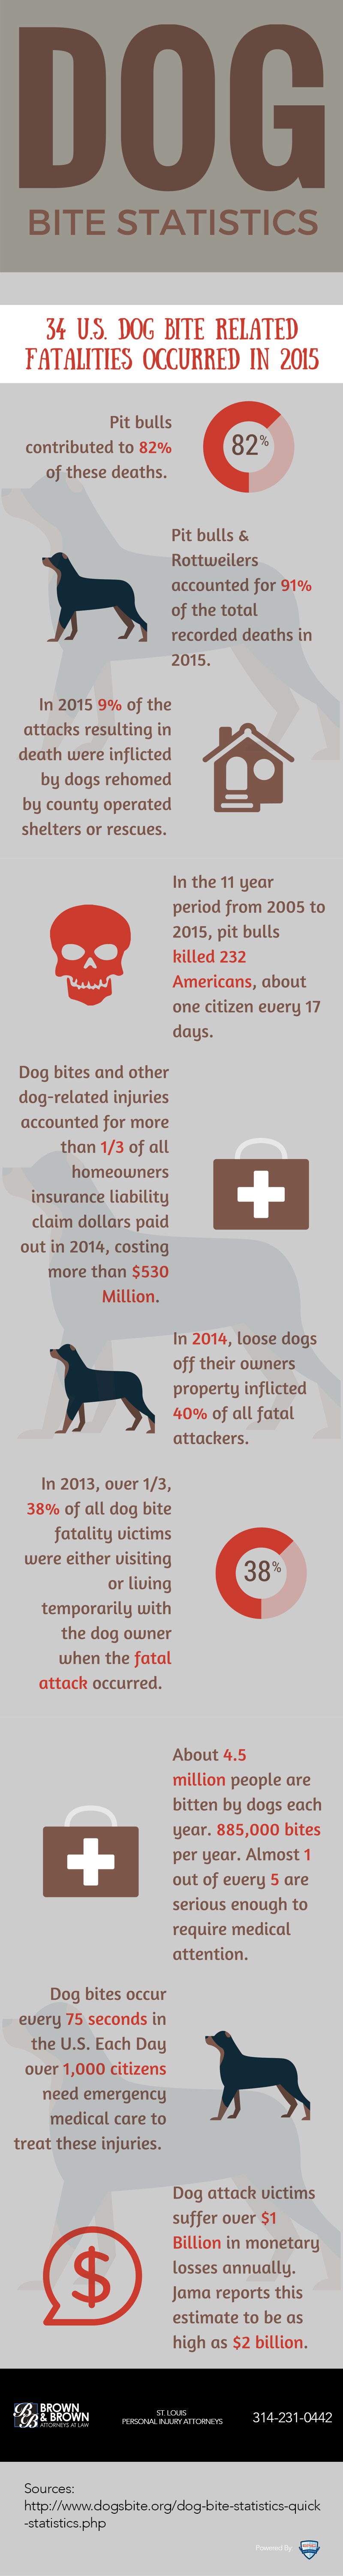 Serious Dog Bites Happen More Often Than You May Realize [Infographic]